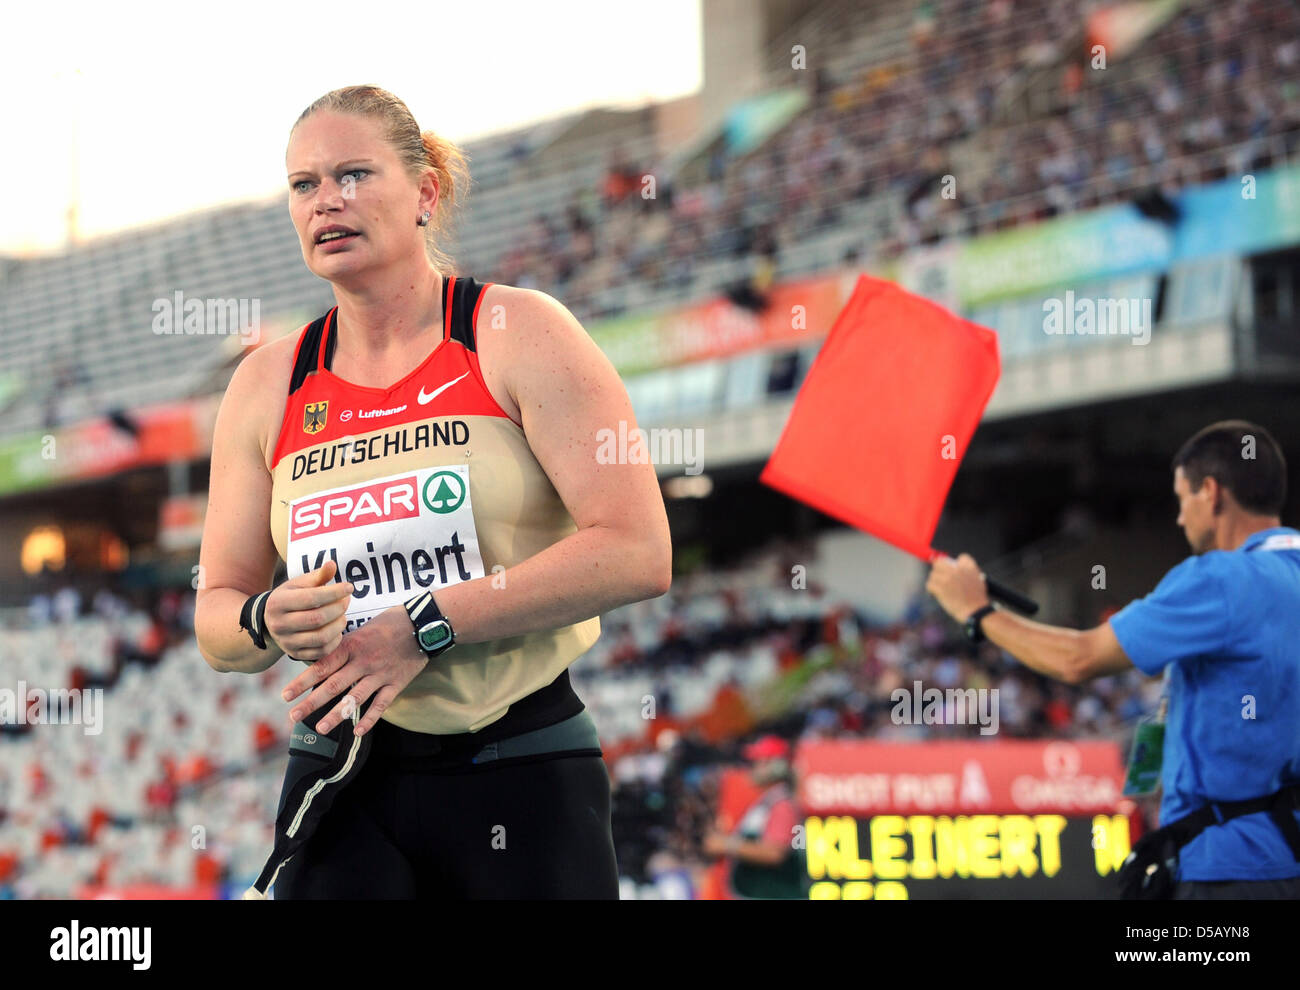 German shot putter Nadine Kleinert performs during the shot put event at the European Athletics Championships in - Stock Image